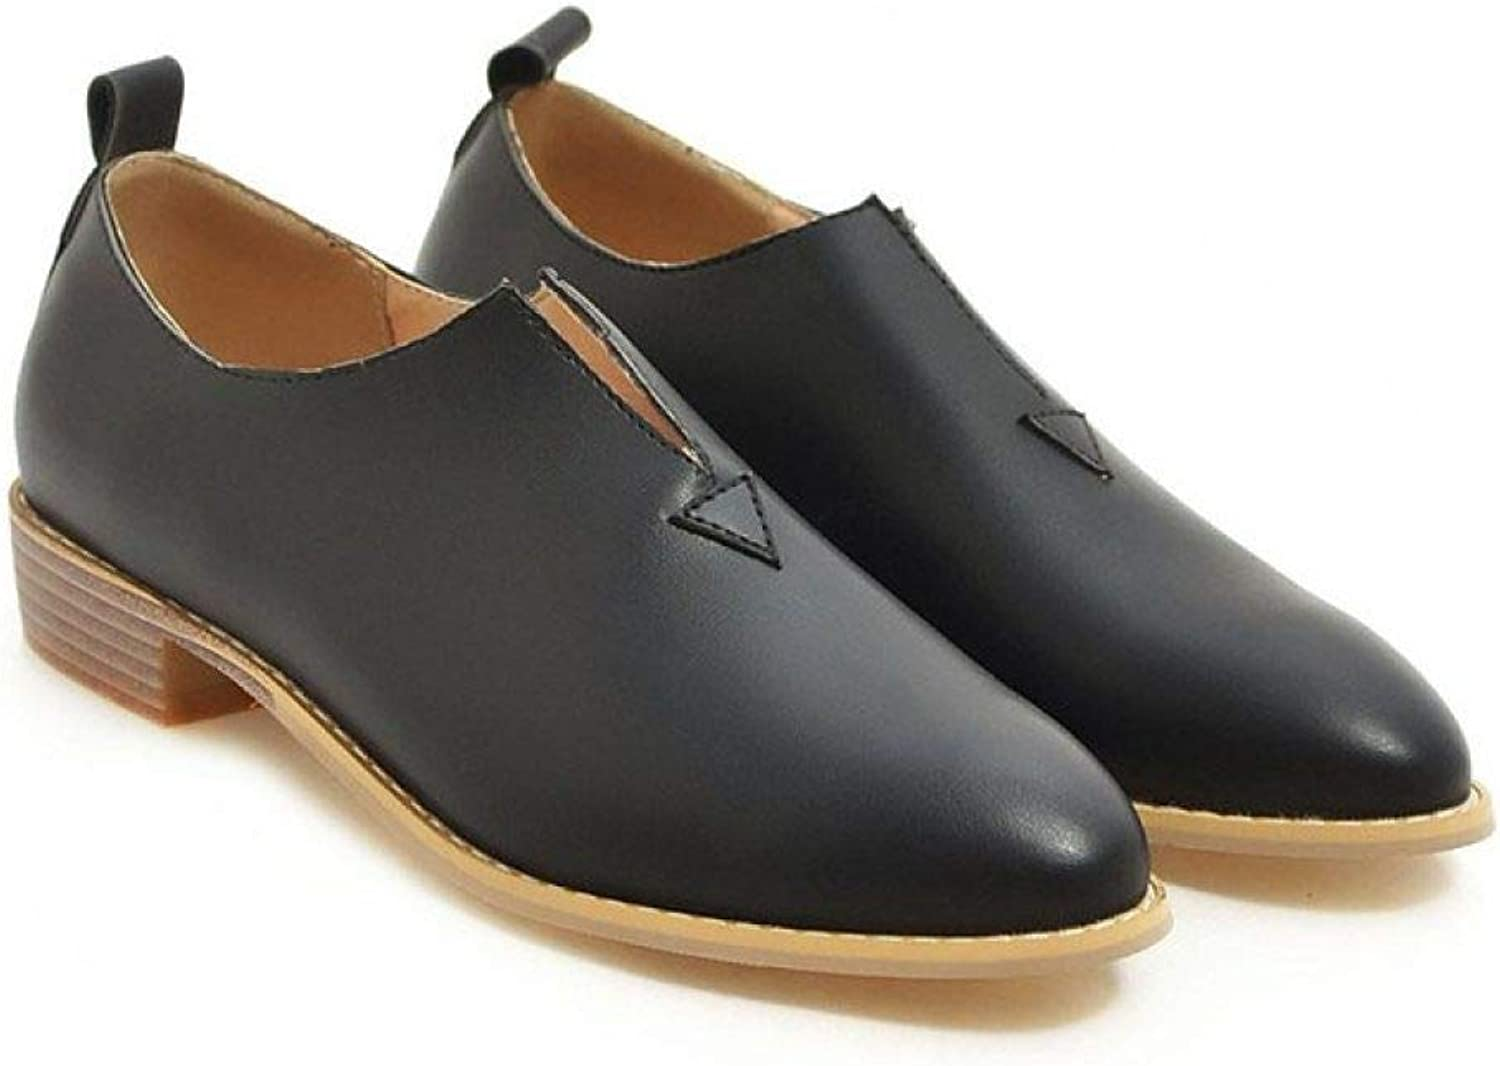 Fay Waters Women's Pointed Toe Leather Oxfords Low Heel Slip On Plain Tone Flat Classic shoes